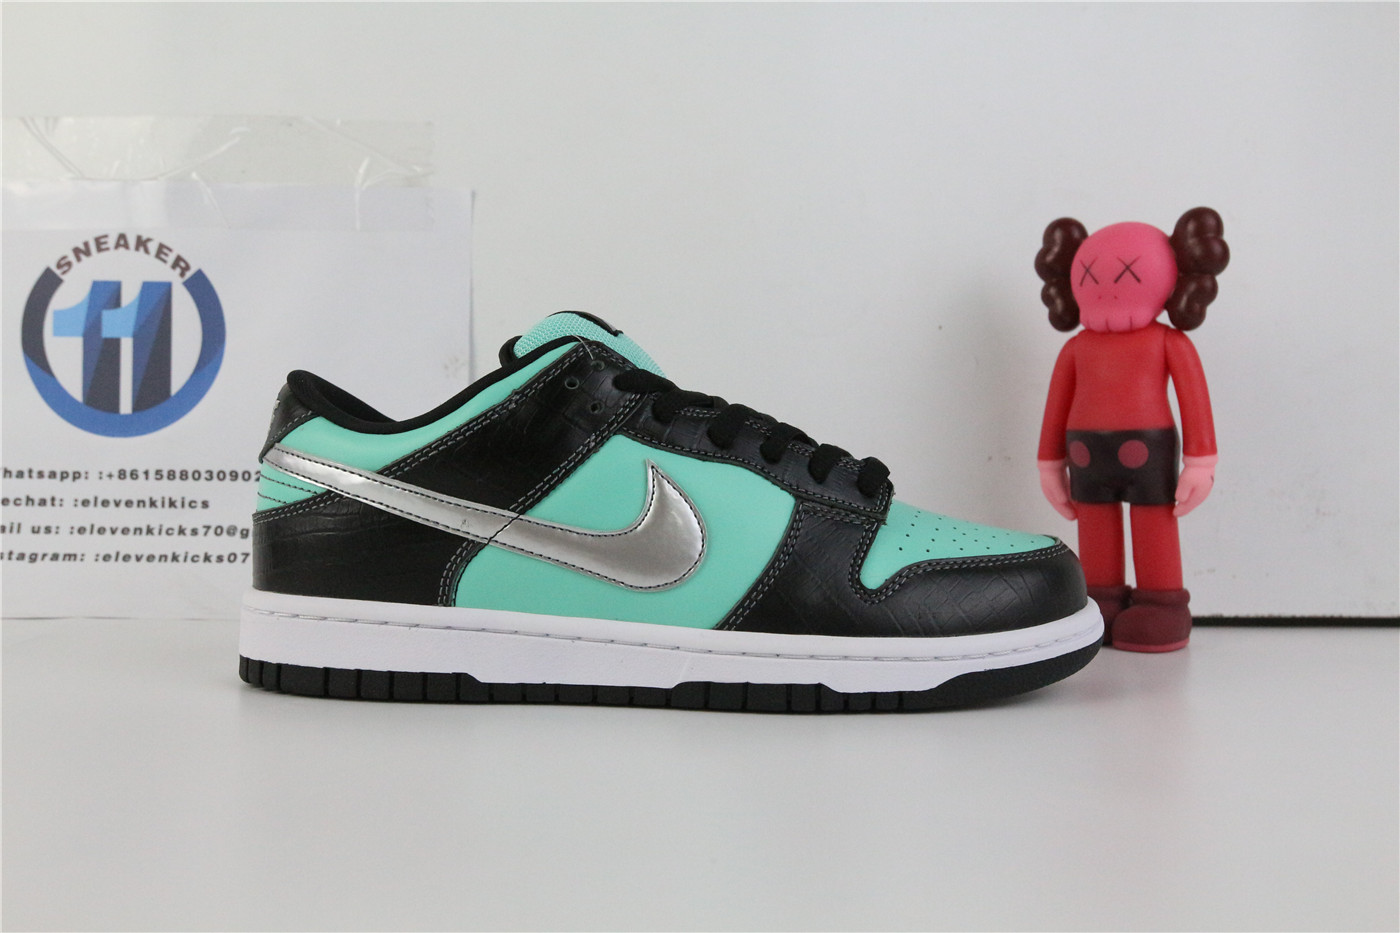 Nike Dunk SB Low Diamond Supply Co.